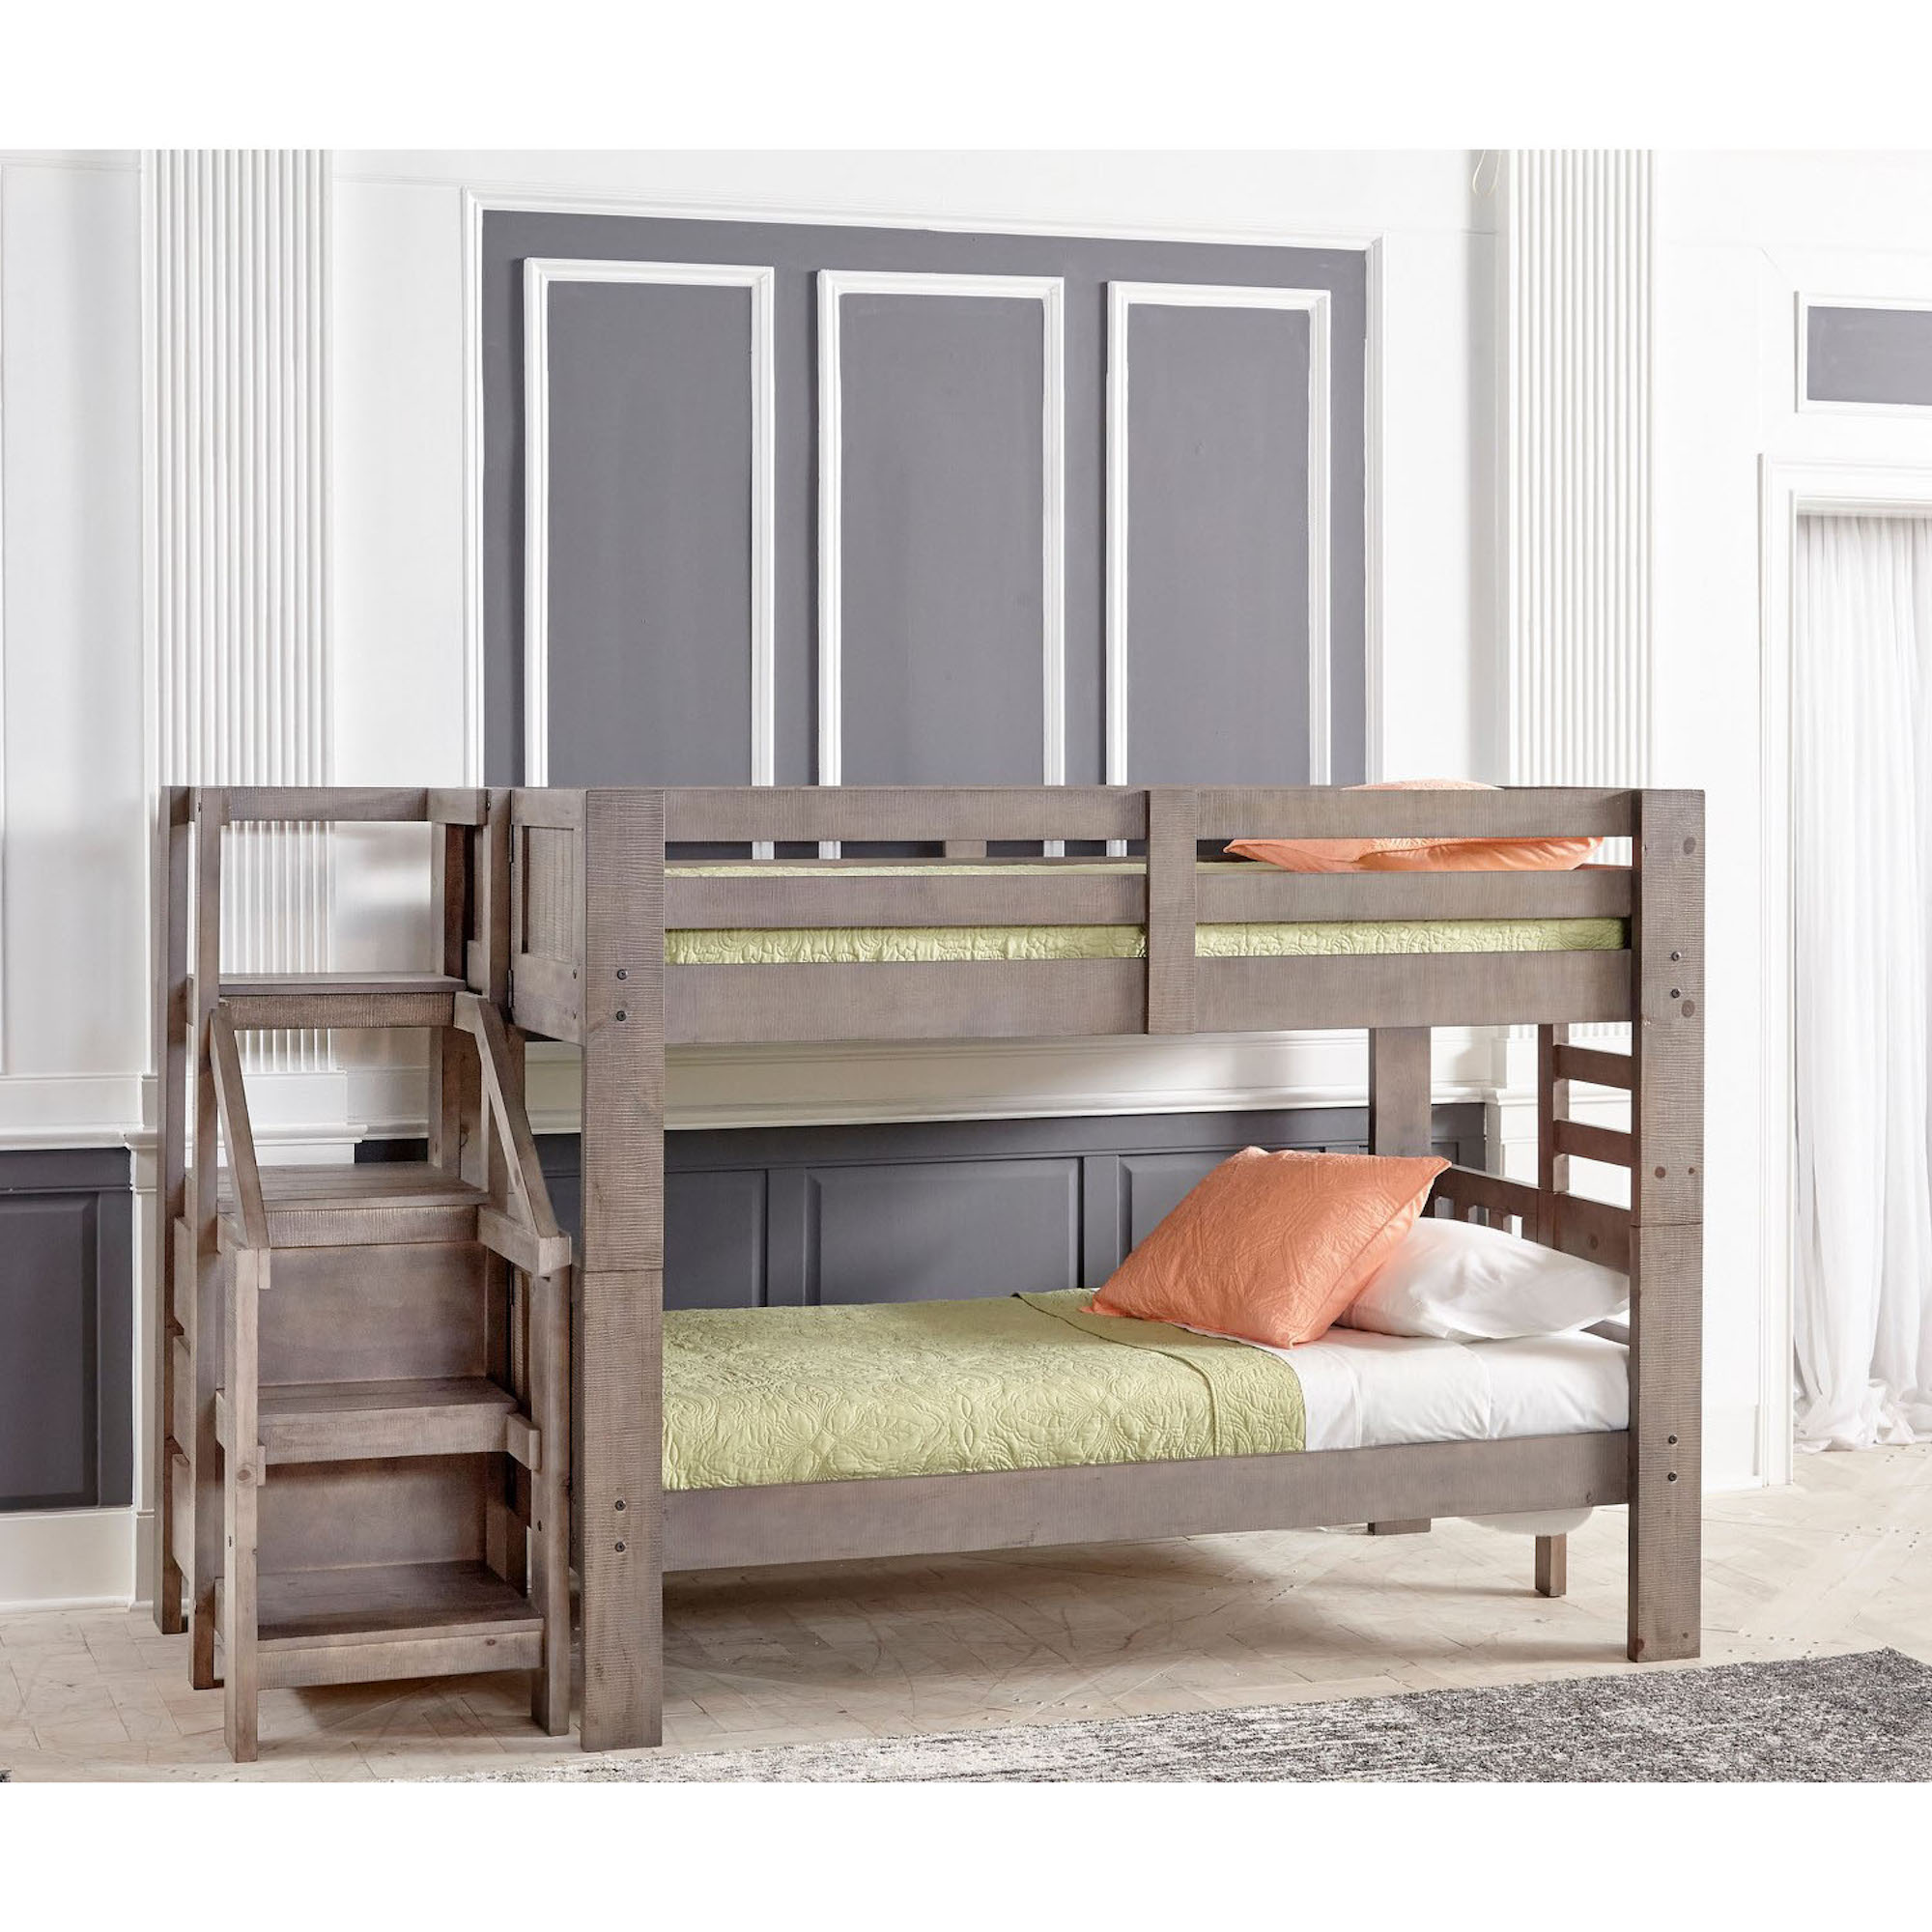 7 Piece Twin Bunk Bed